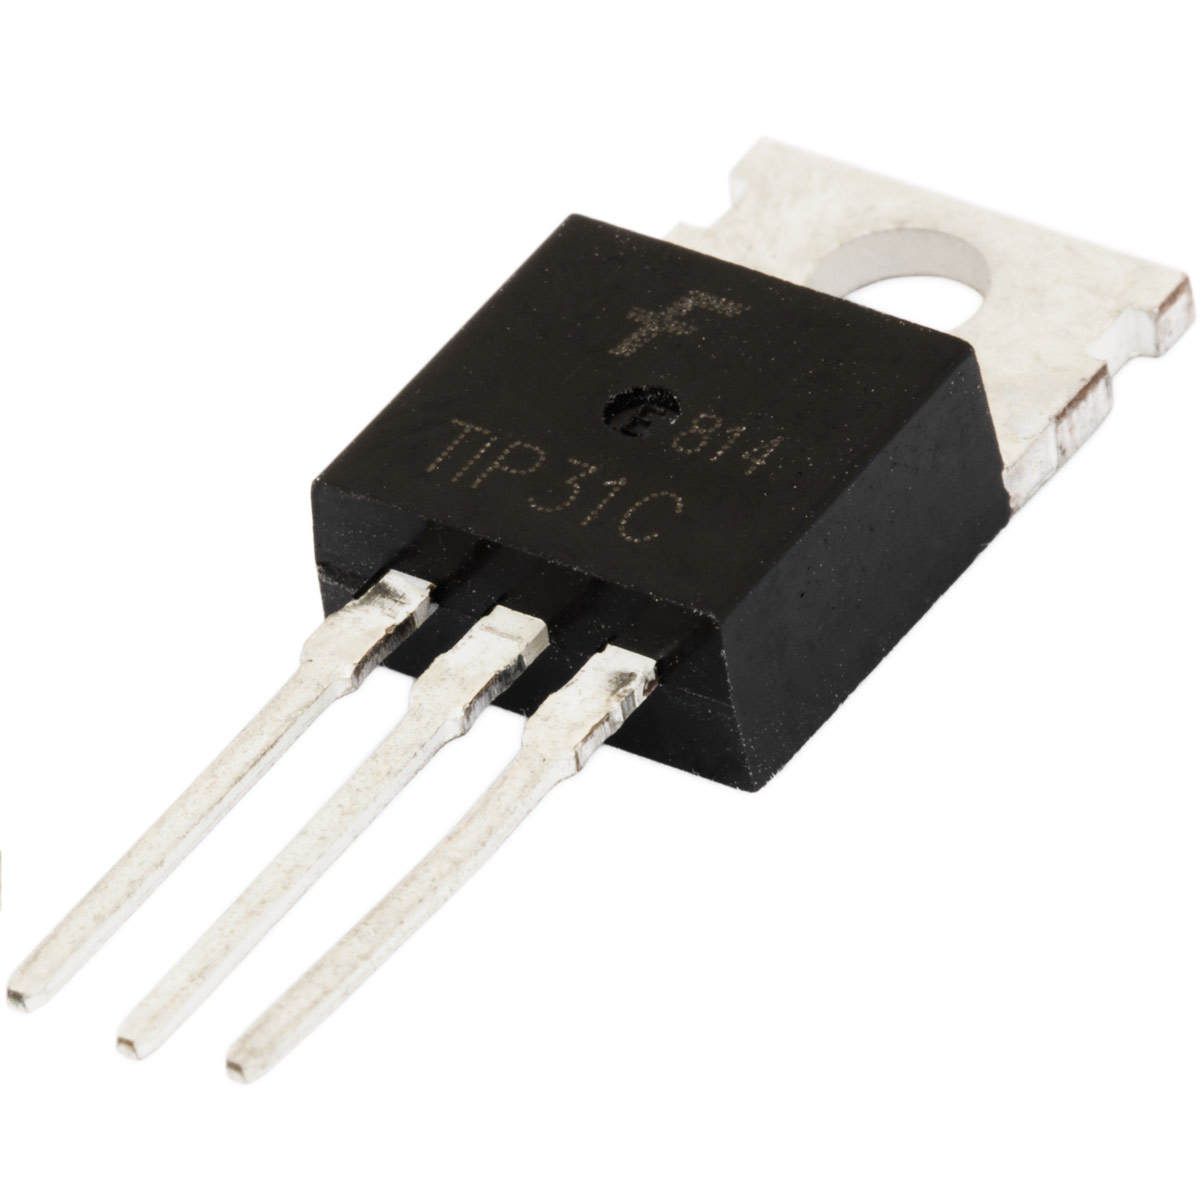 Tip31 Medium Power Linear Switching Npn Transistor besides Flemings Right Hand Rule further Miniature Electric Fence Circuit Used In Mosquito Racket likewise 2n2222 General Purpose Npn Switching Transistor additionally Pnp Transistor. on npn circuits